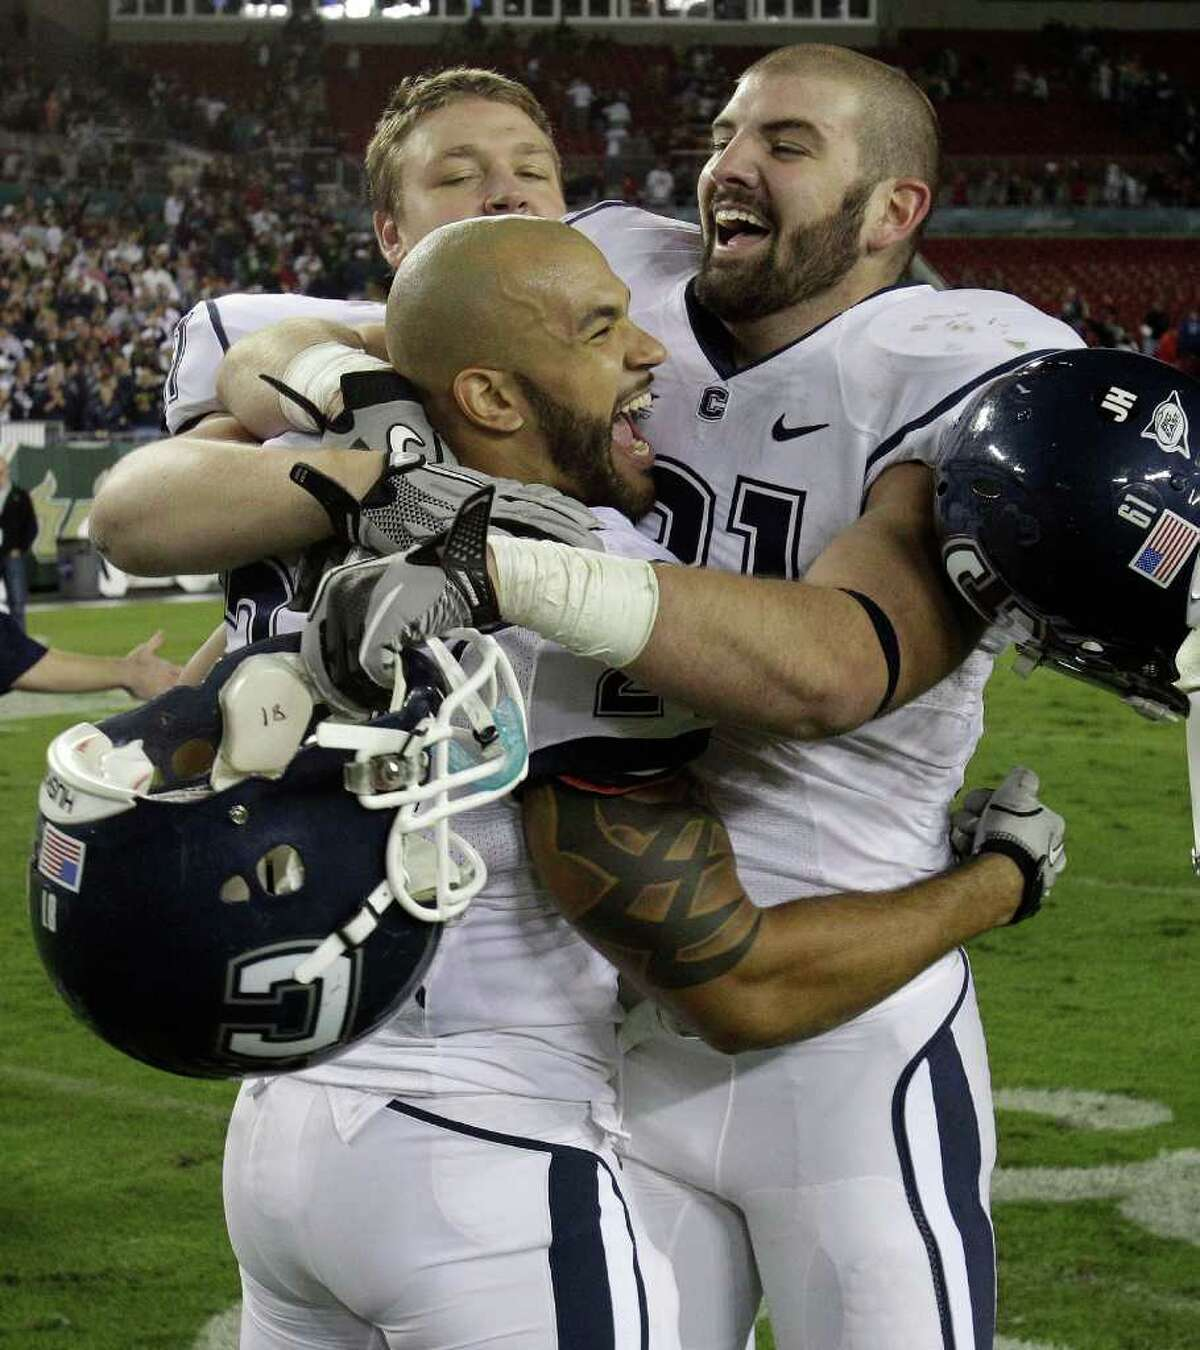 Connecticut running back D.J. Shoemate (24) celebrates with teammates Stephen Brown (61) and Jesse Joseph (91) after defeating South Florida 19-16 to clinch the Big East Conference title during an NCAA college football game Saturday, Dec. 4, 2010, in Tampa, Fla. (AP Photo/Chris O'Meara)